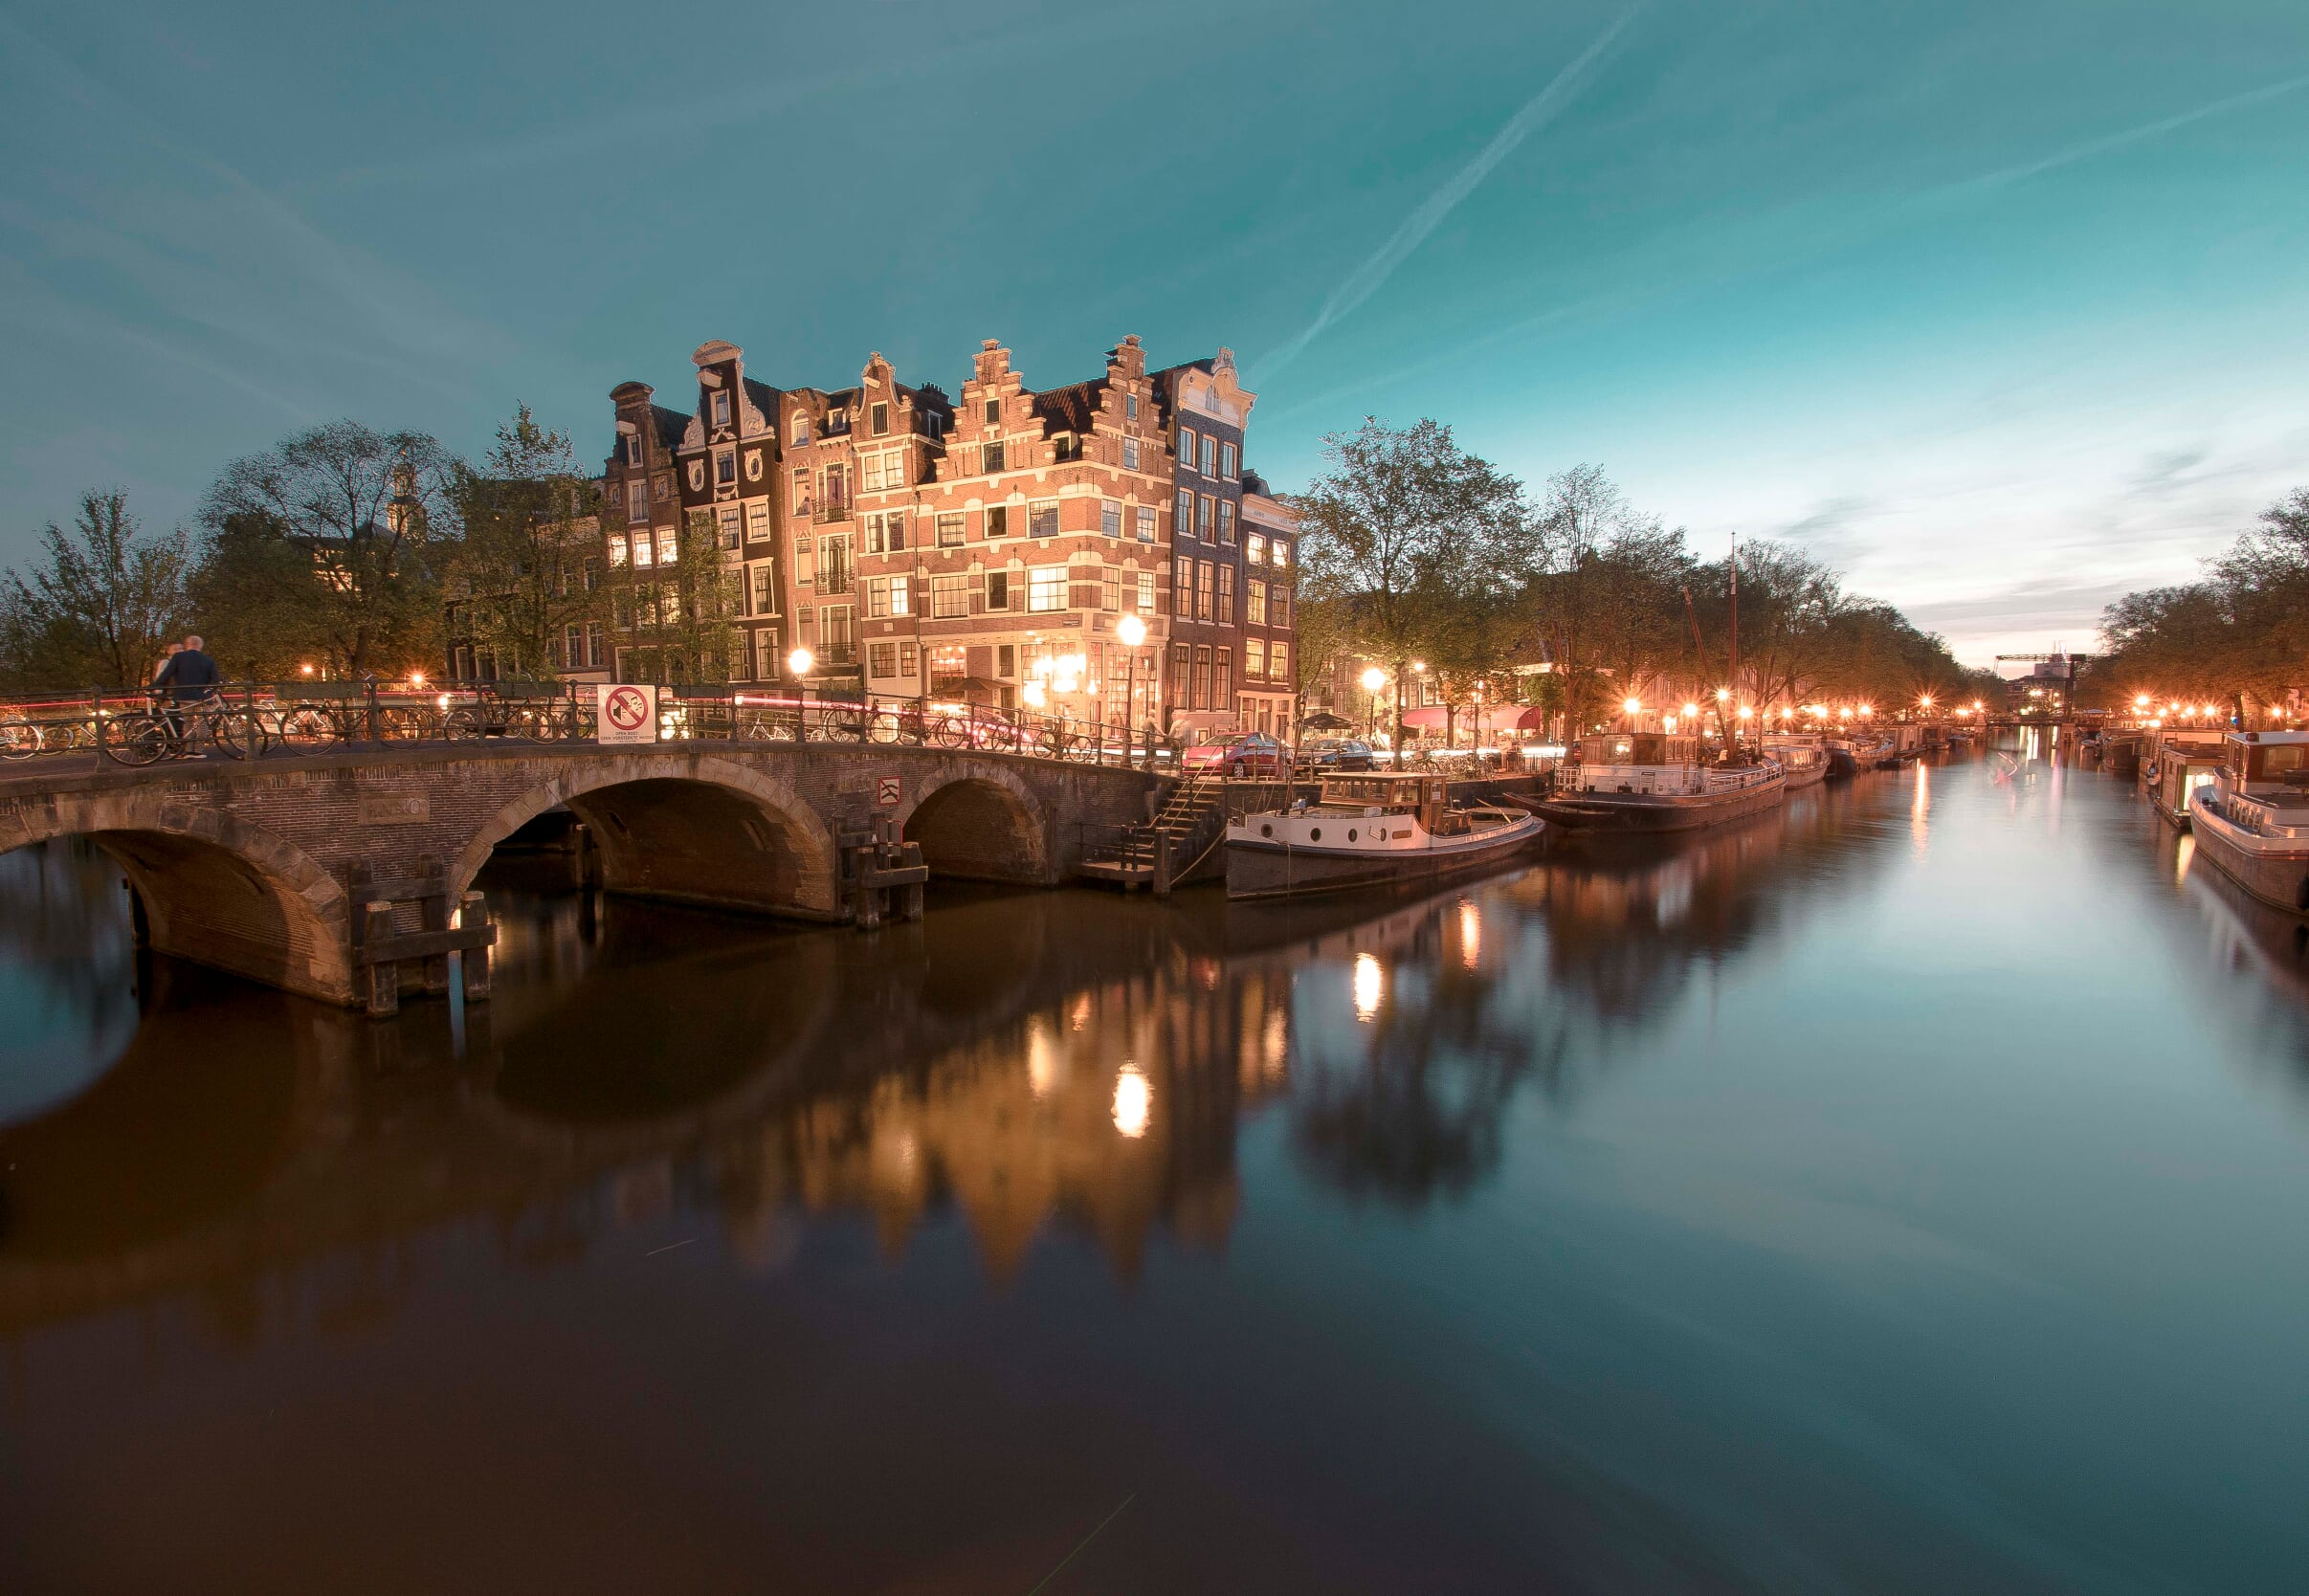 Image of our Amsterdam Boat Cruise